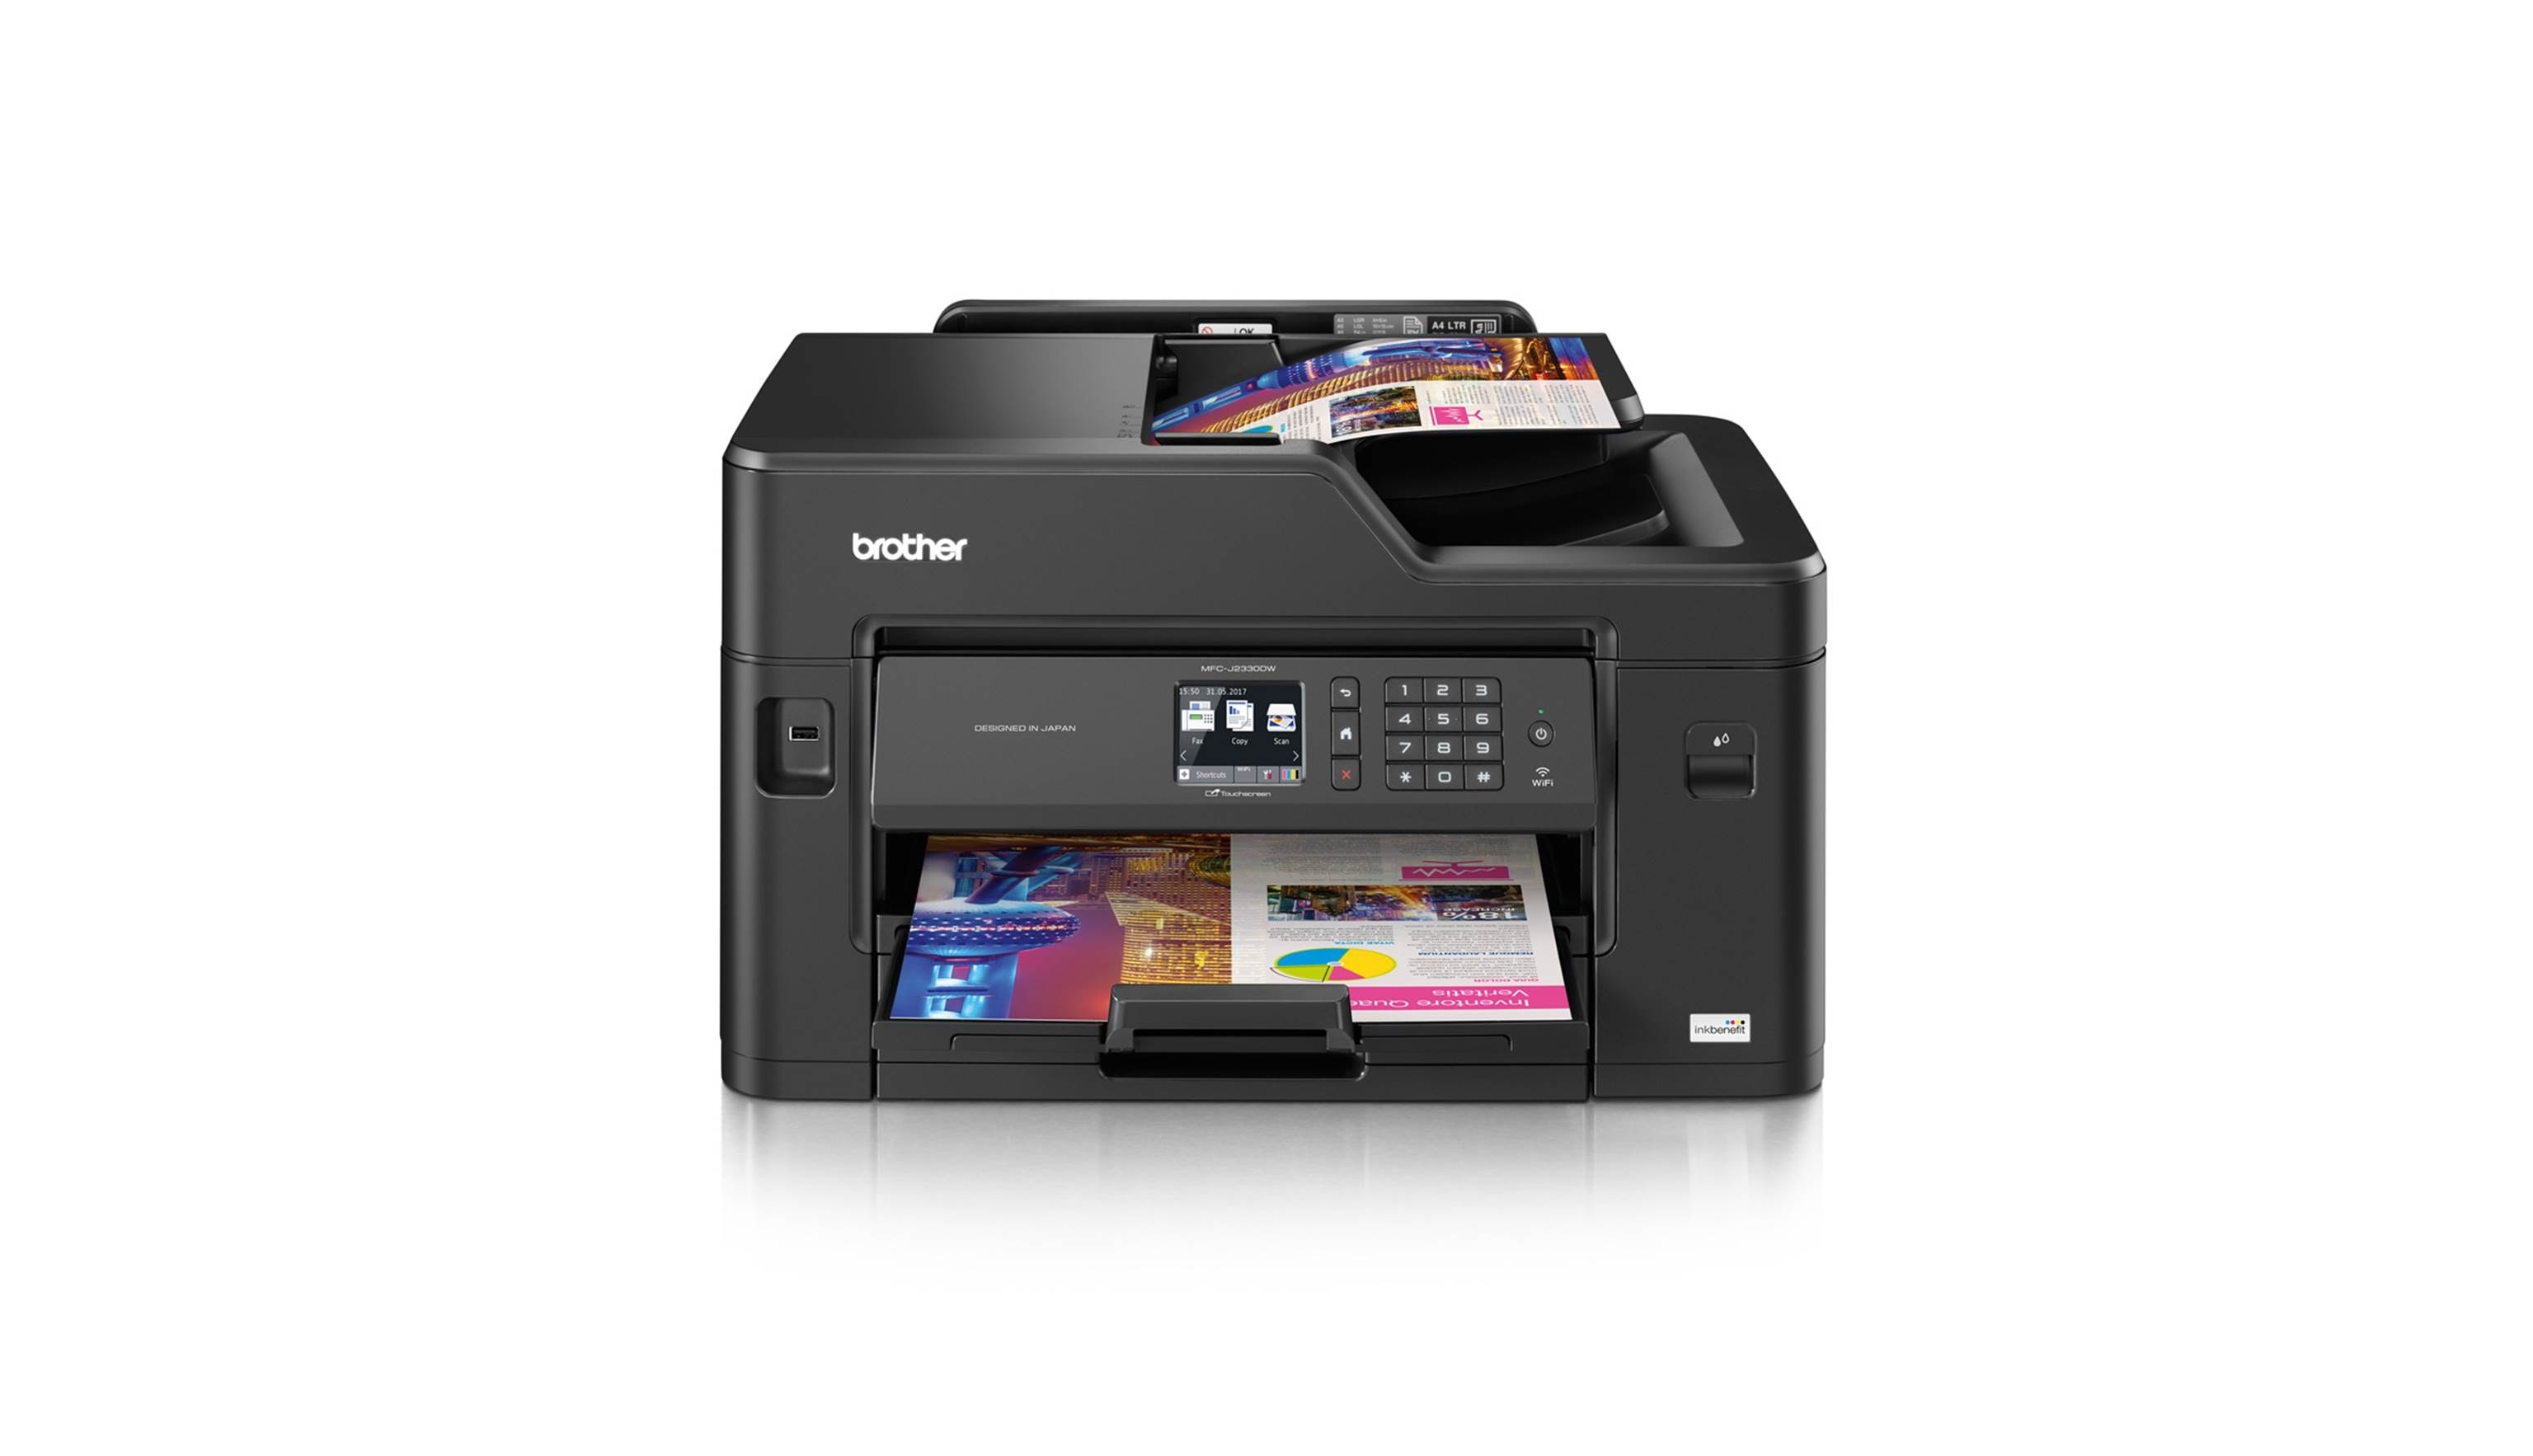 Brother Wireless Inkjet MFC-J2330DW All-in-one Printer- Front View.jpg